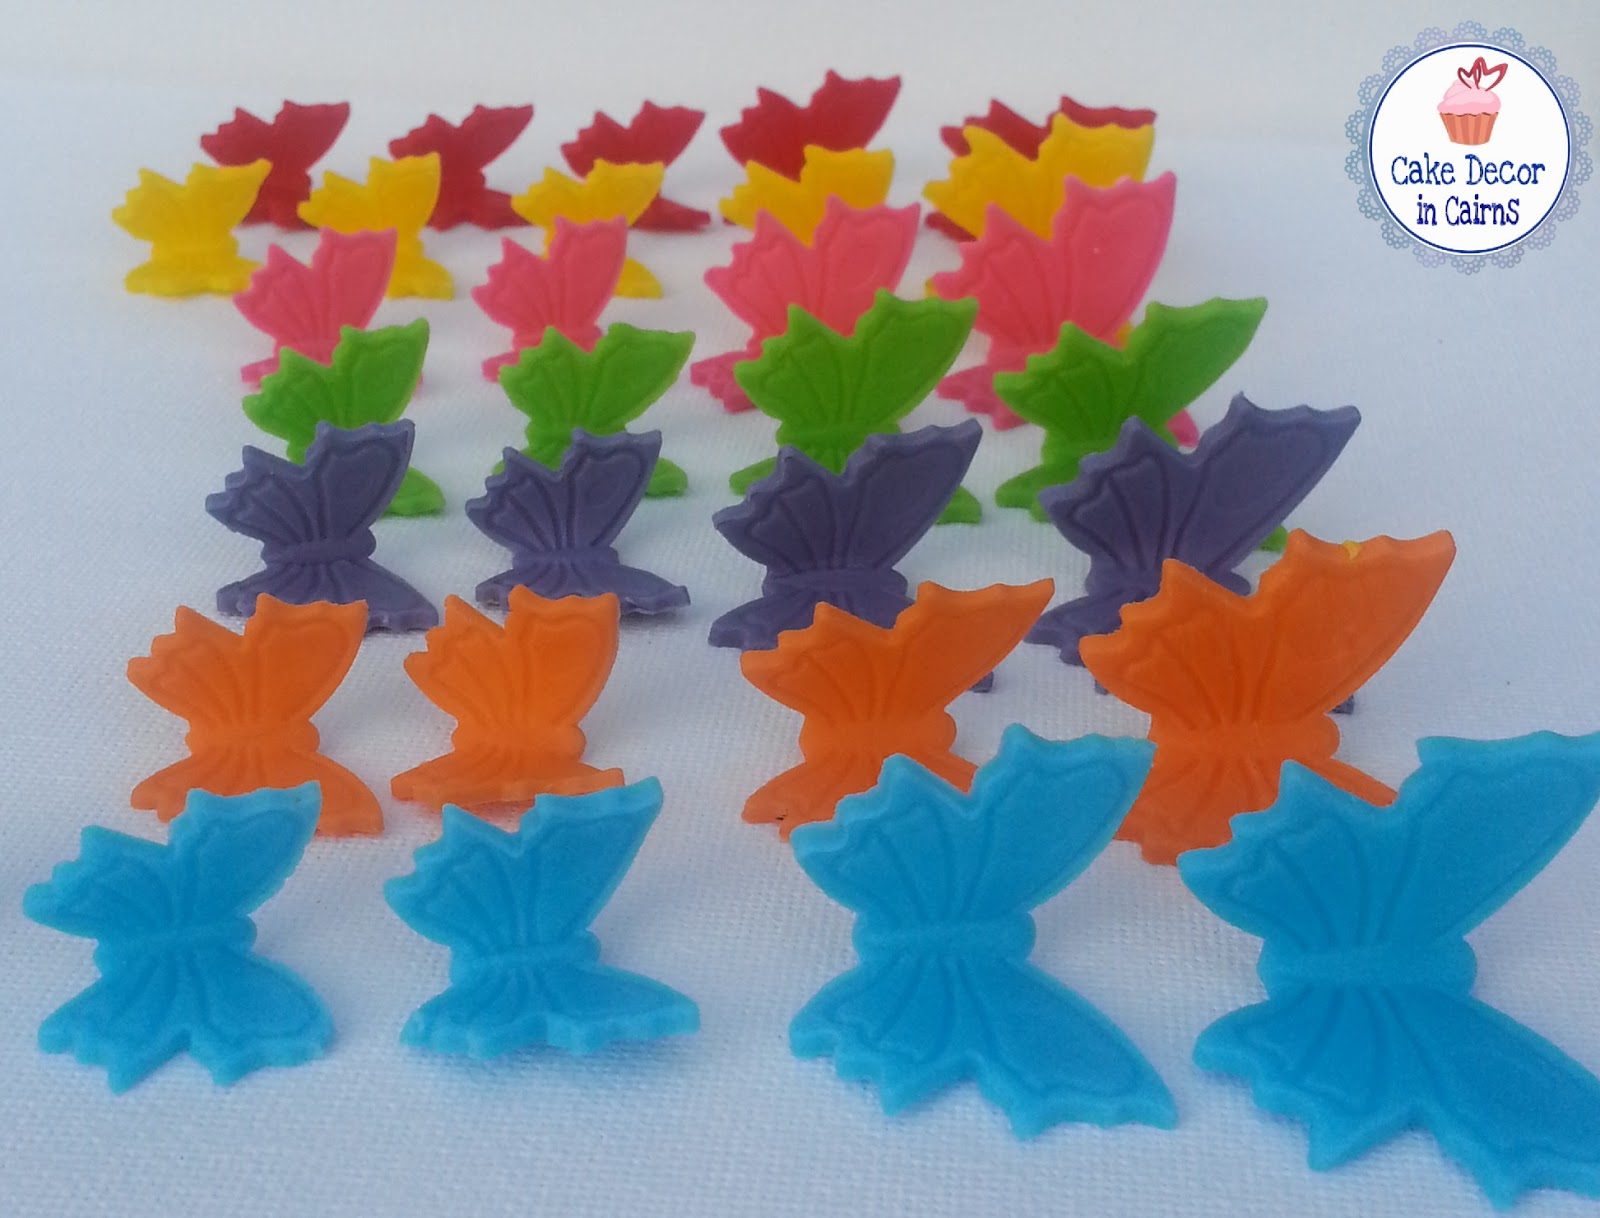 Rainbow Fondant Gumpaste Butterfly Cupcake Cake toppers  Red Yellow Pink Green Purple Orange Blue